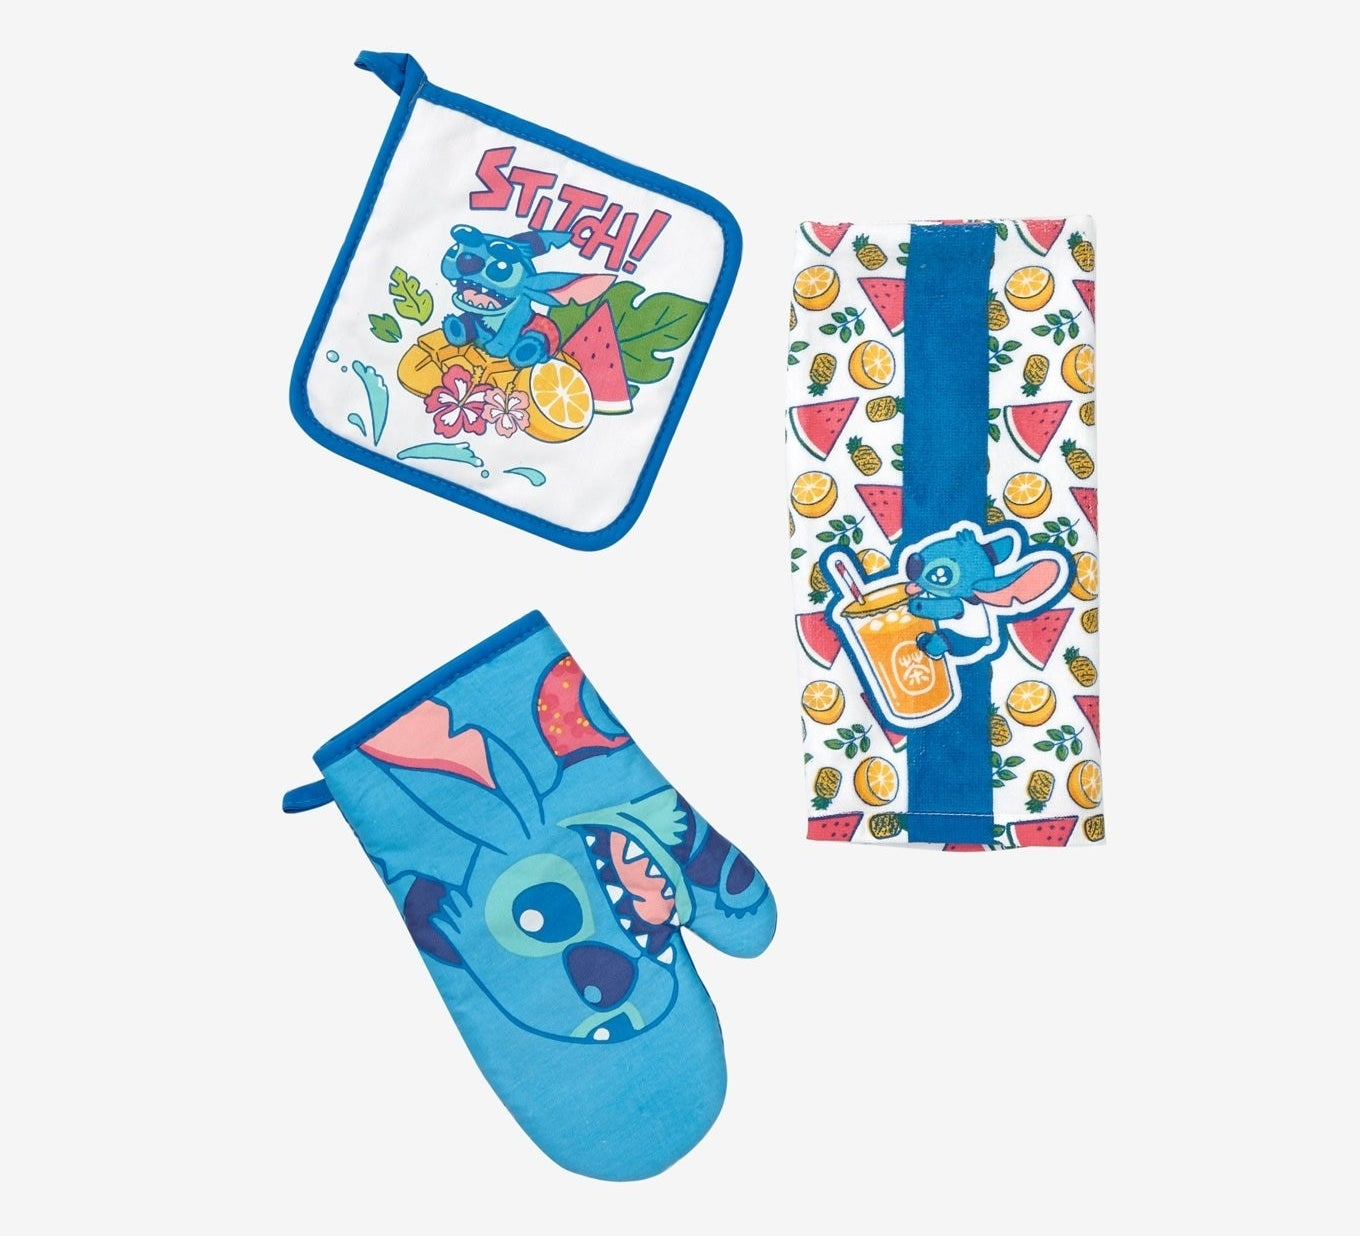 stitch oven mitt, stitch drinking a juice with fruit towel, and stitch with fruit pot holder